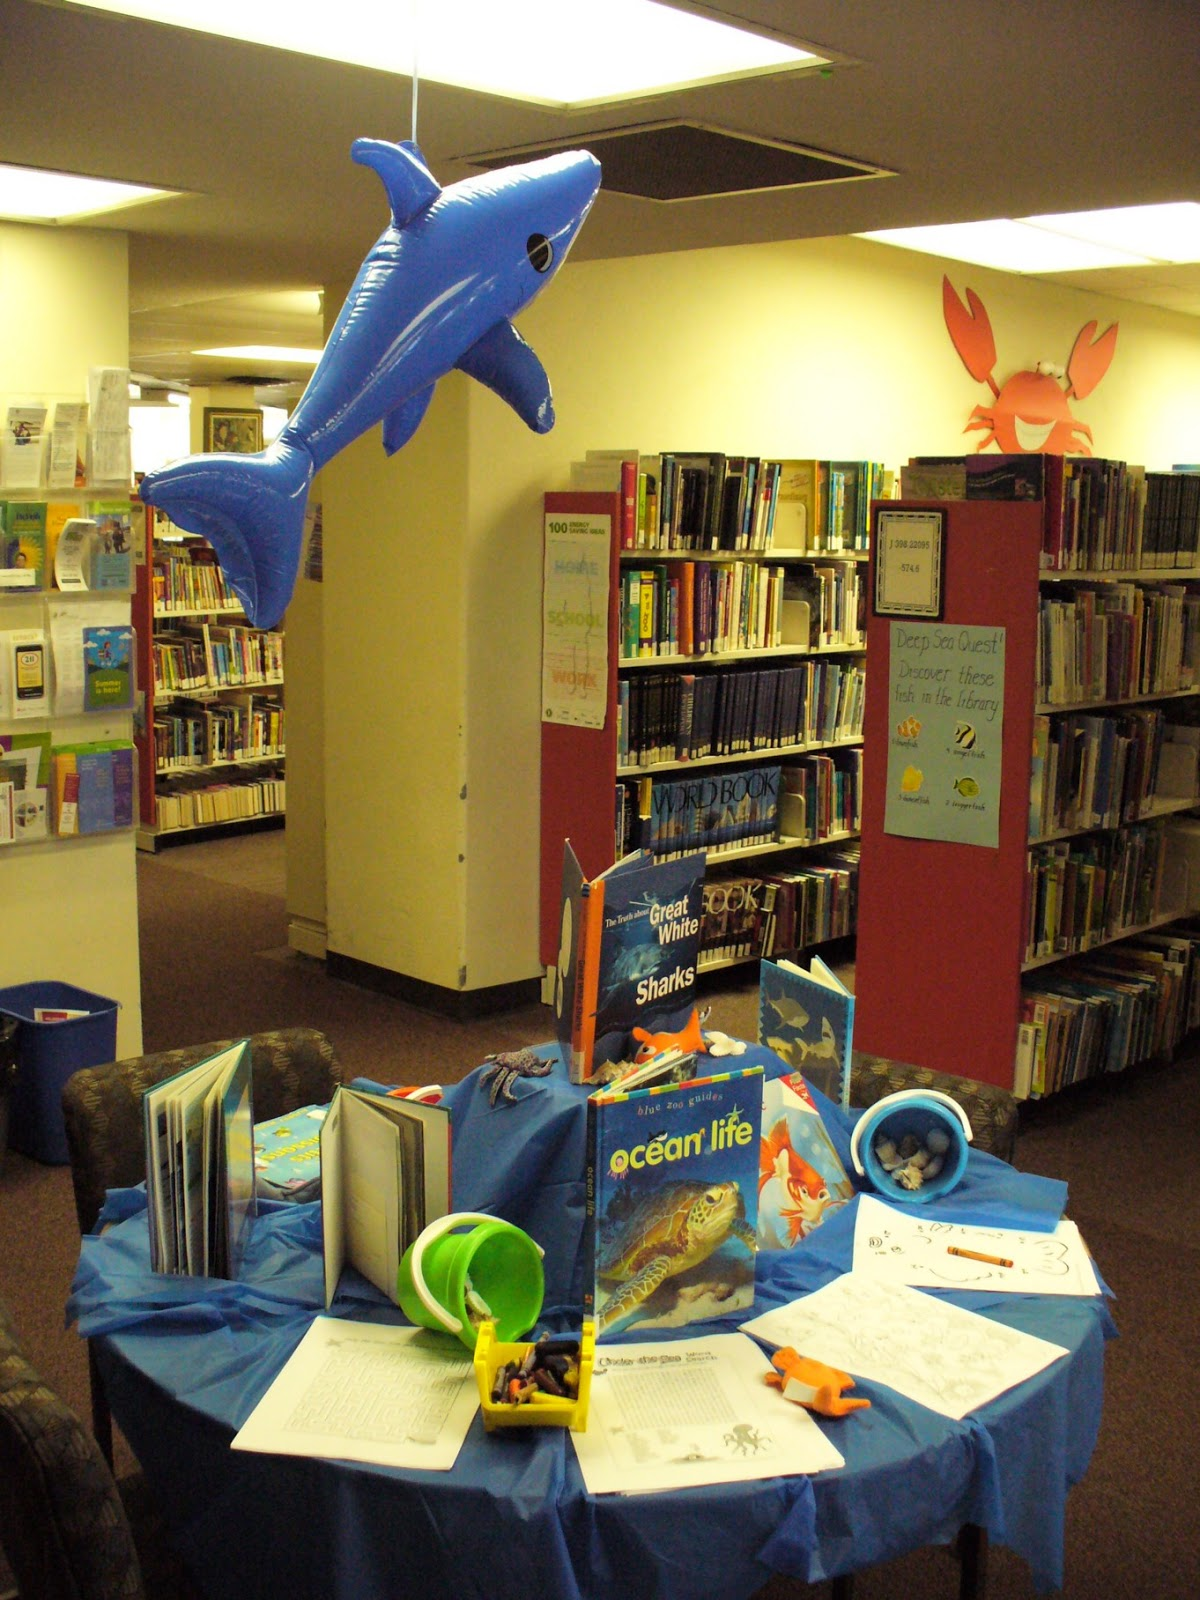 Library Displays World Oceans Day  June 8th. Date Ideas Redondo Beach. Kitchen Cabinet Storage Design Ideas. Makeup Storage Ideas Uk. Outfit Ideas Pokemon X. Paint Color Ideas For Vaulted Ceilings. Kitchen Backsplash Subway Tile Design Ideas. Patio Ideas Country. Cake Ideas For A Man